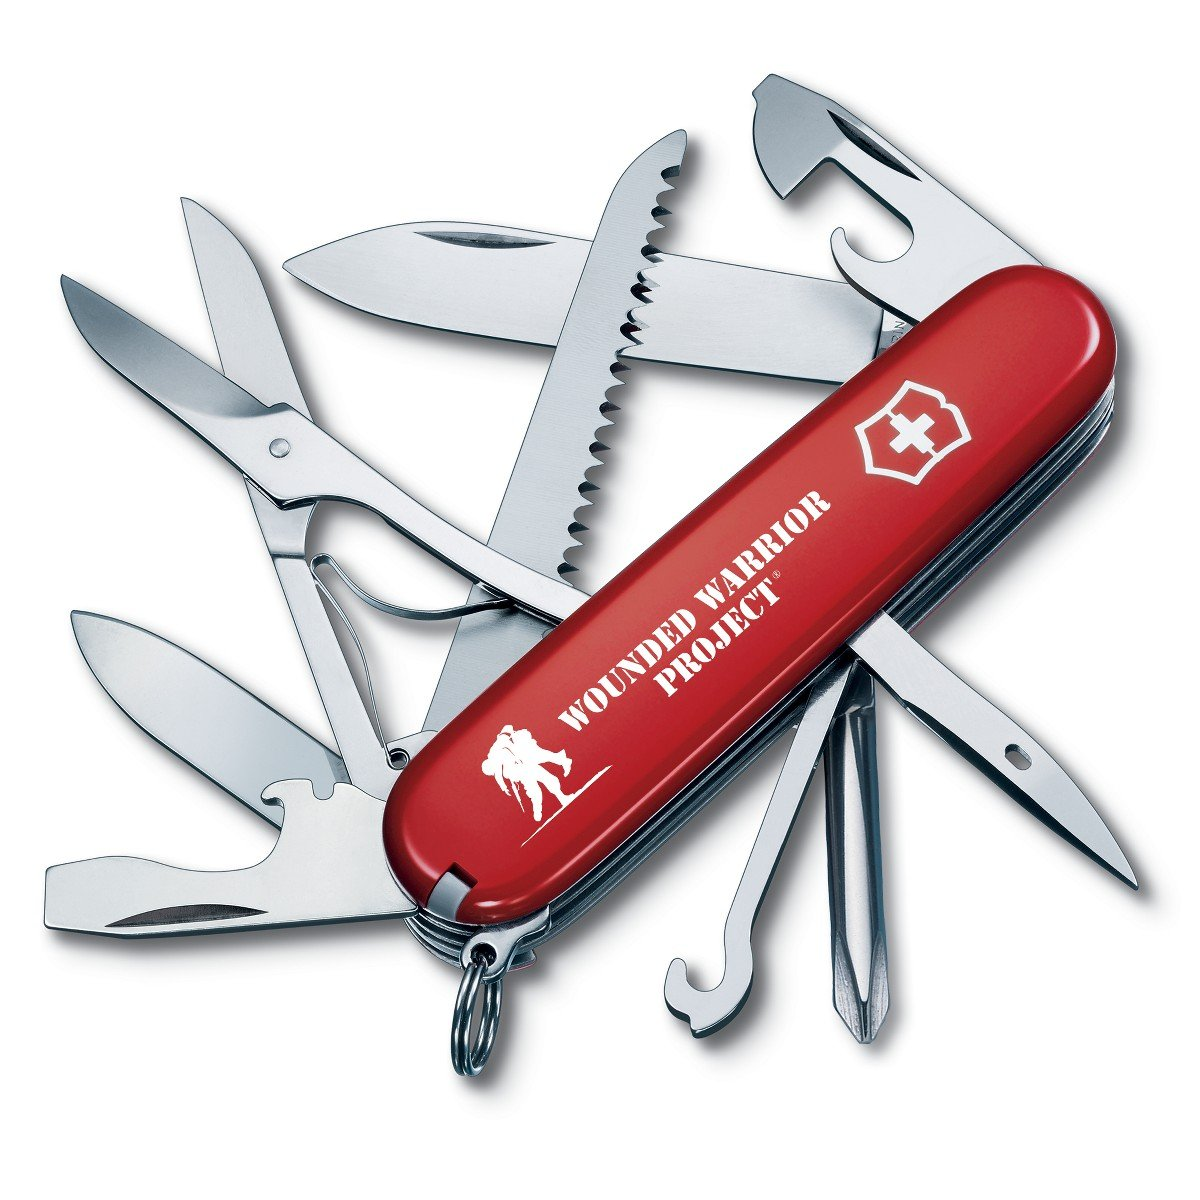 Victorinox Swiss Army Fieldmaster Pocket Knife 55074.US2, Wounded Warrior Project Collection, Red with WWP Logo